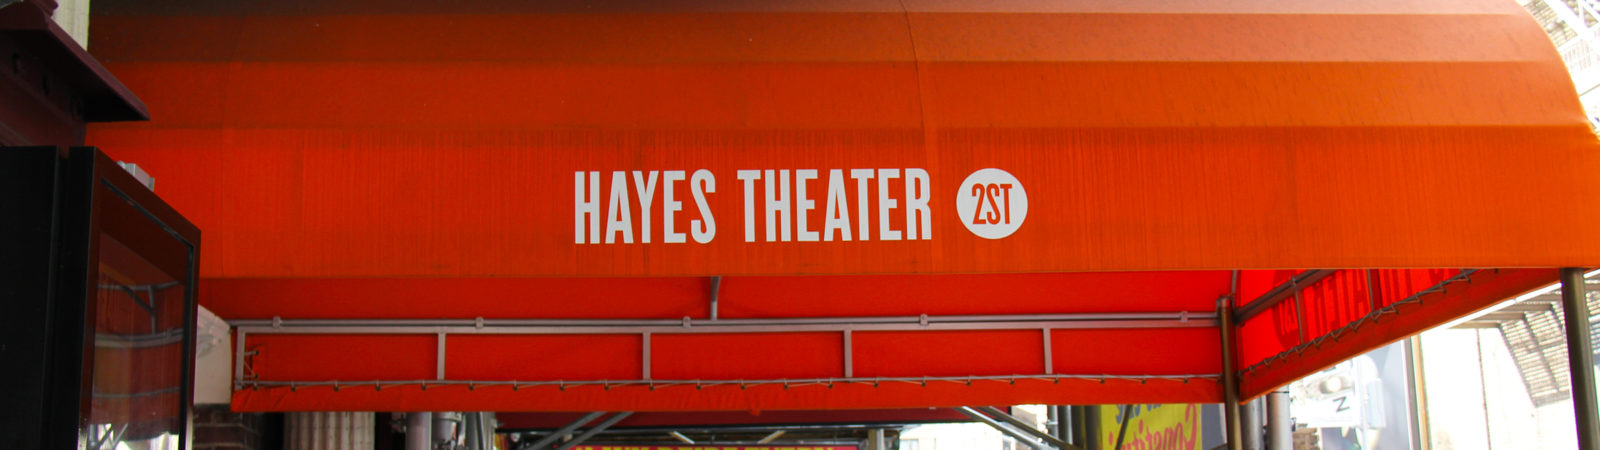 Hayes Theater